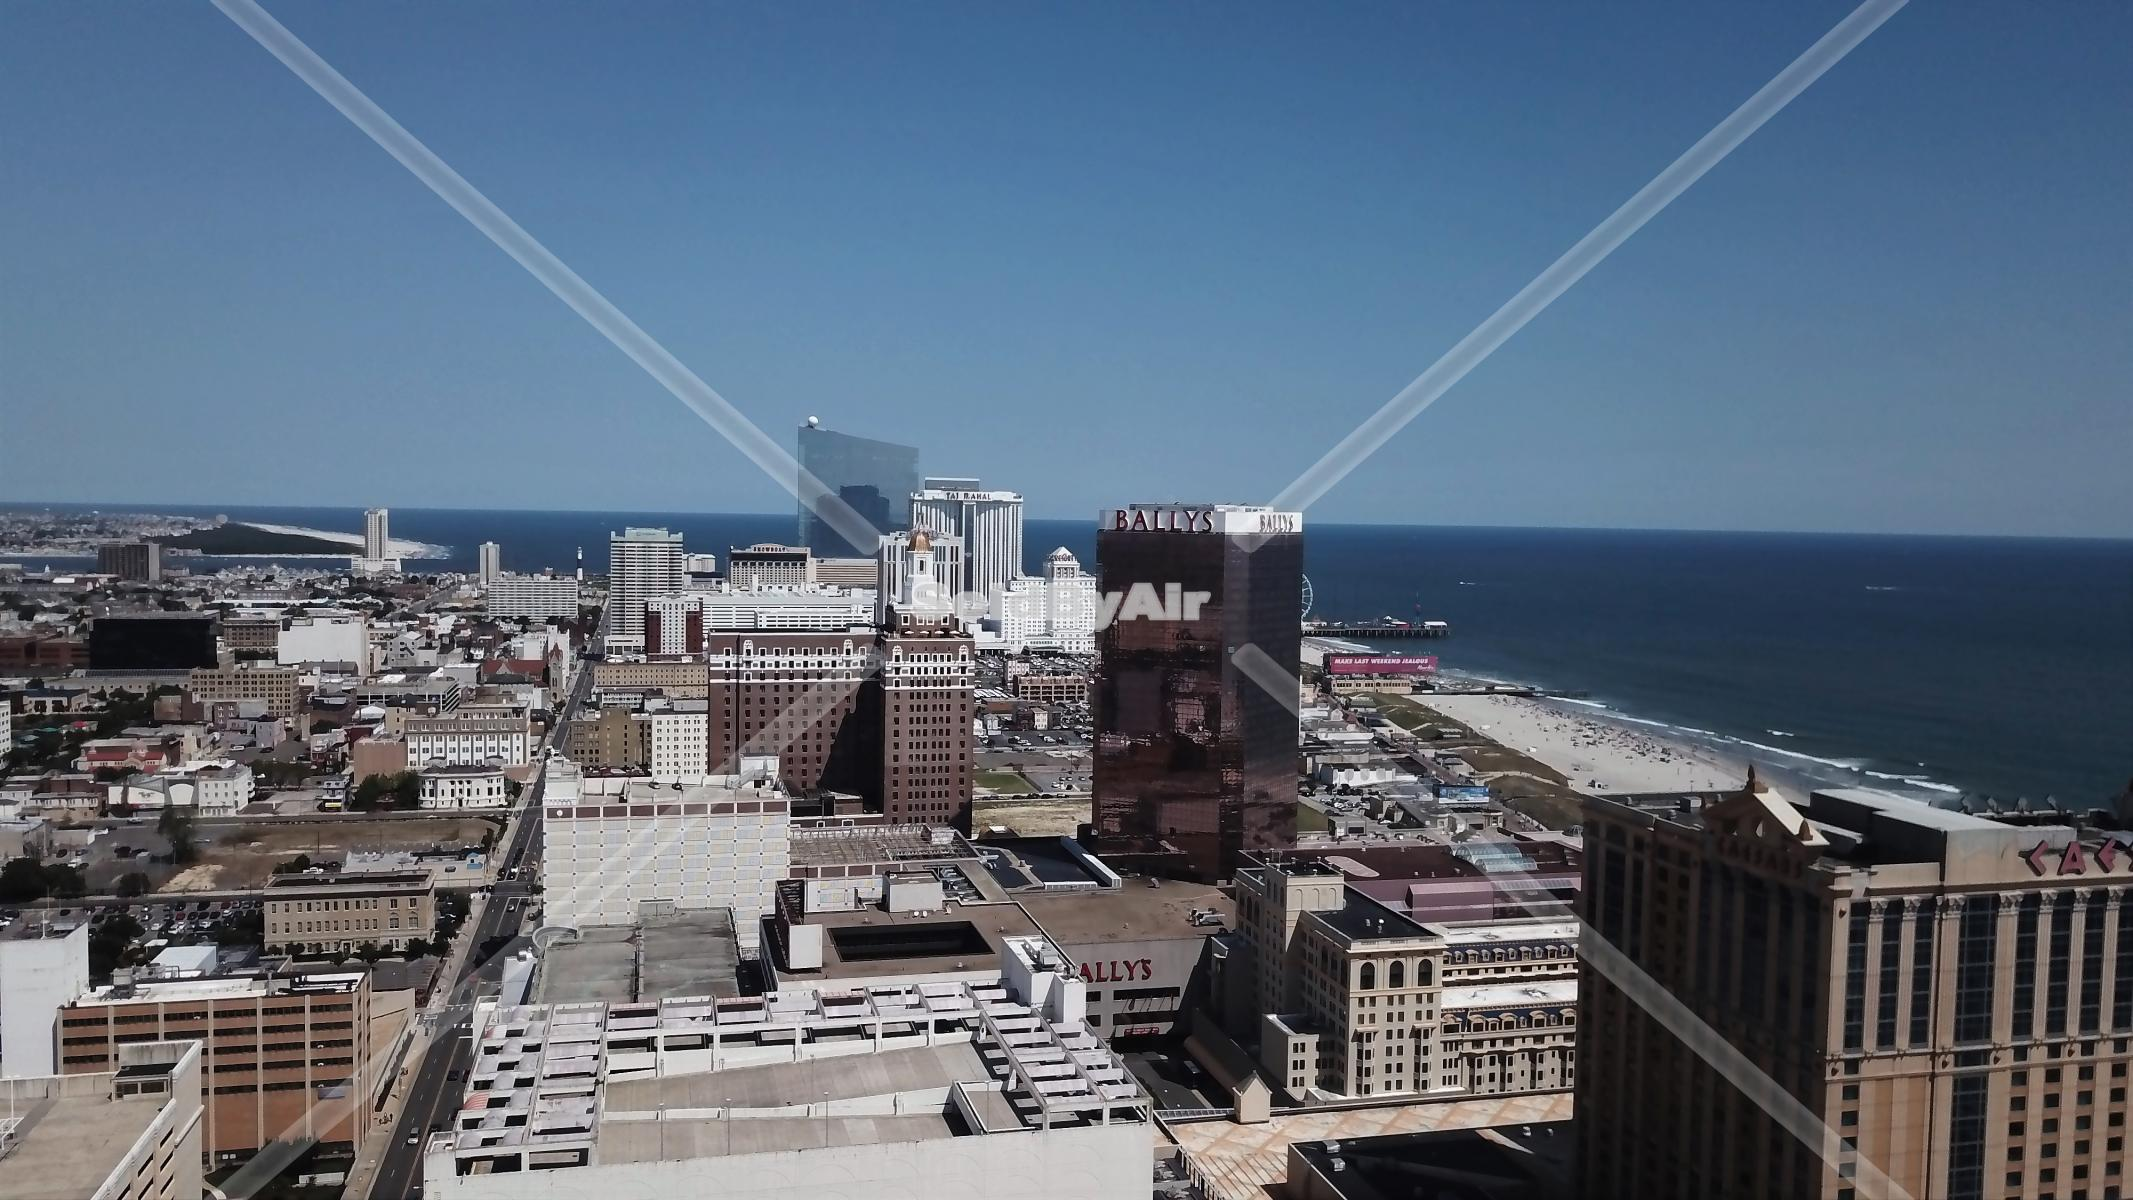 Drone Photo of Ocean front real estate in Atlantic City New Jersey